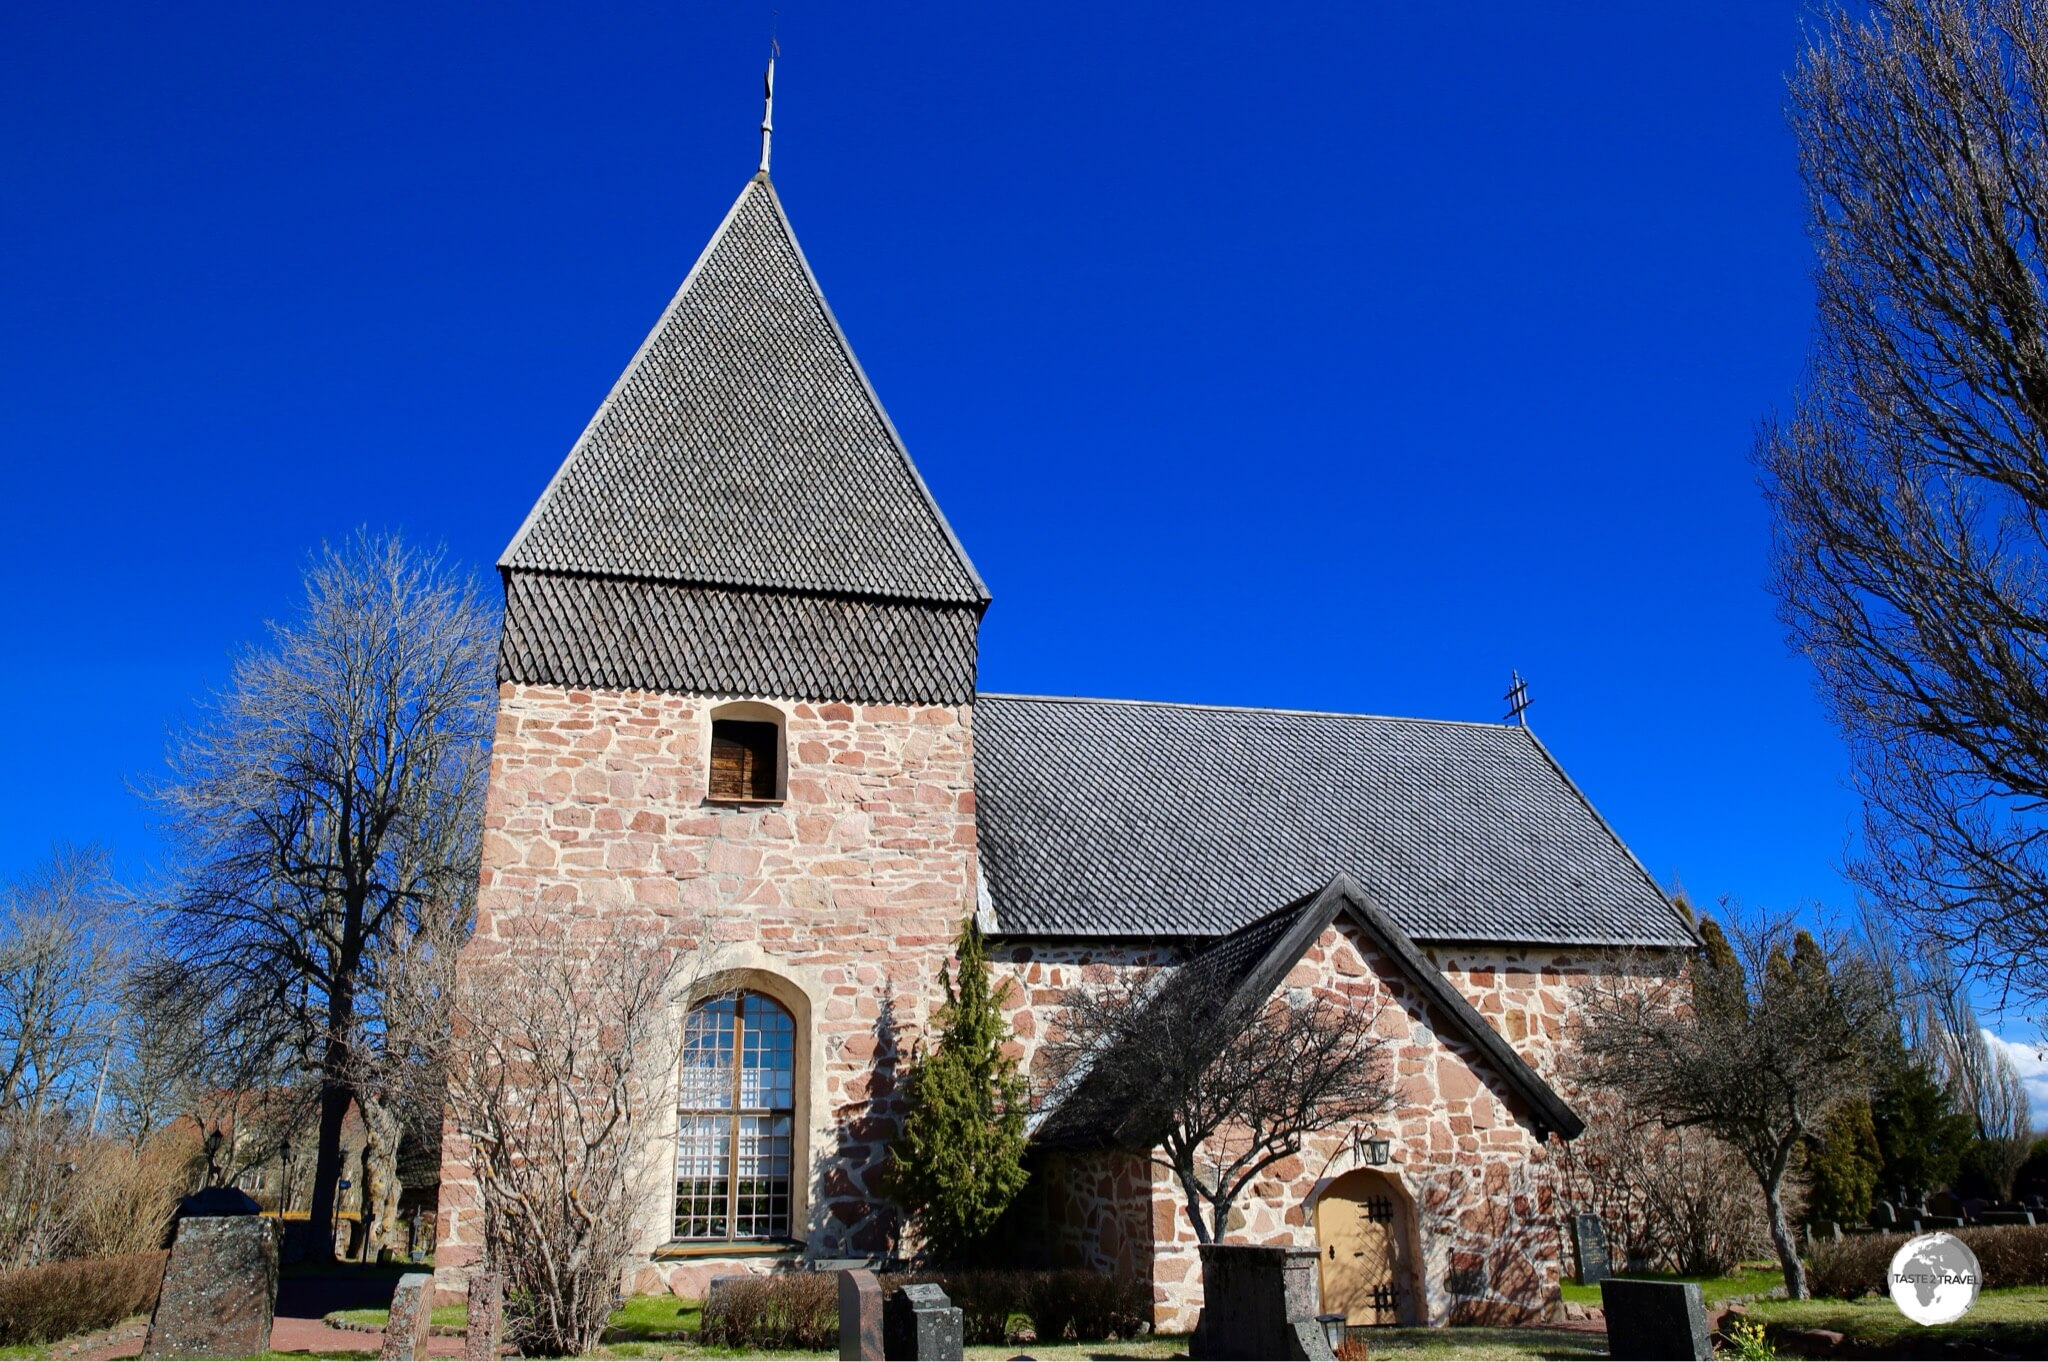 Eckerö church is dedicated to St. Lawrence.